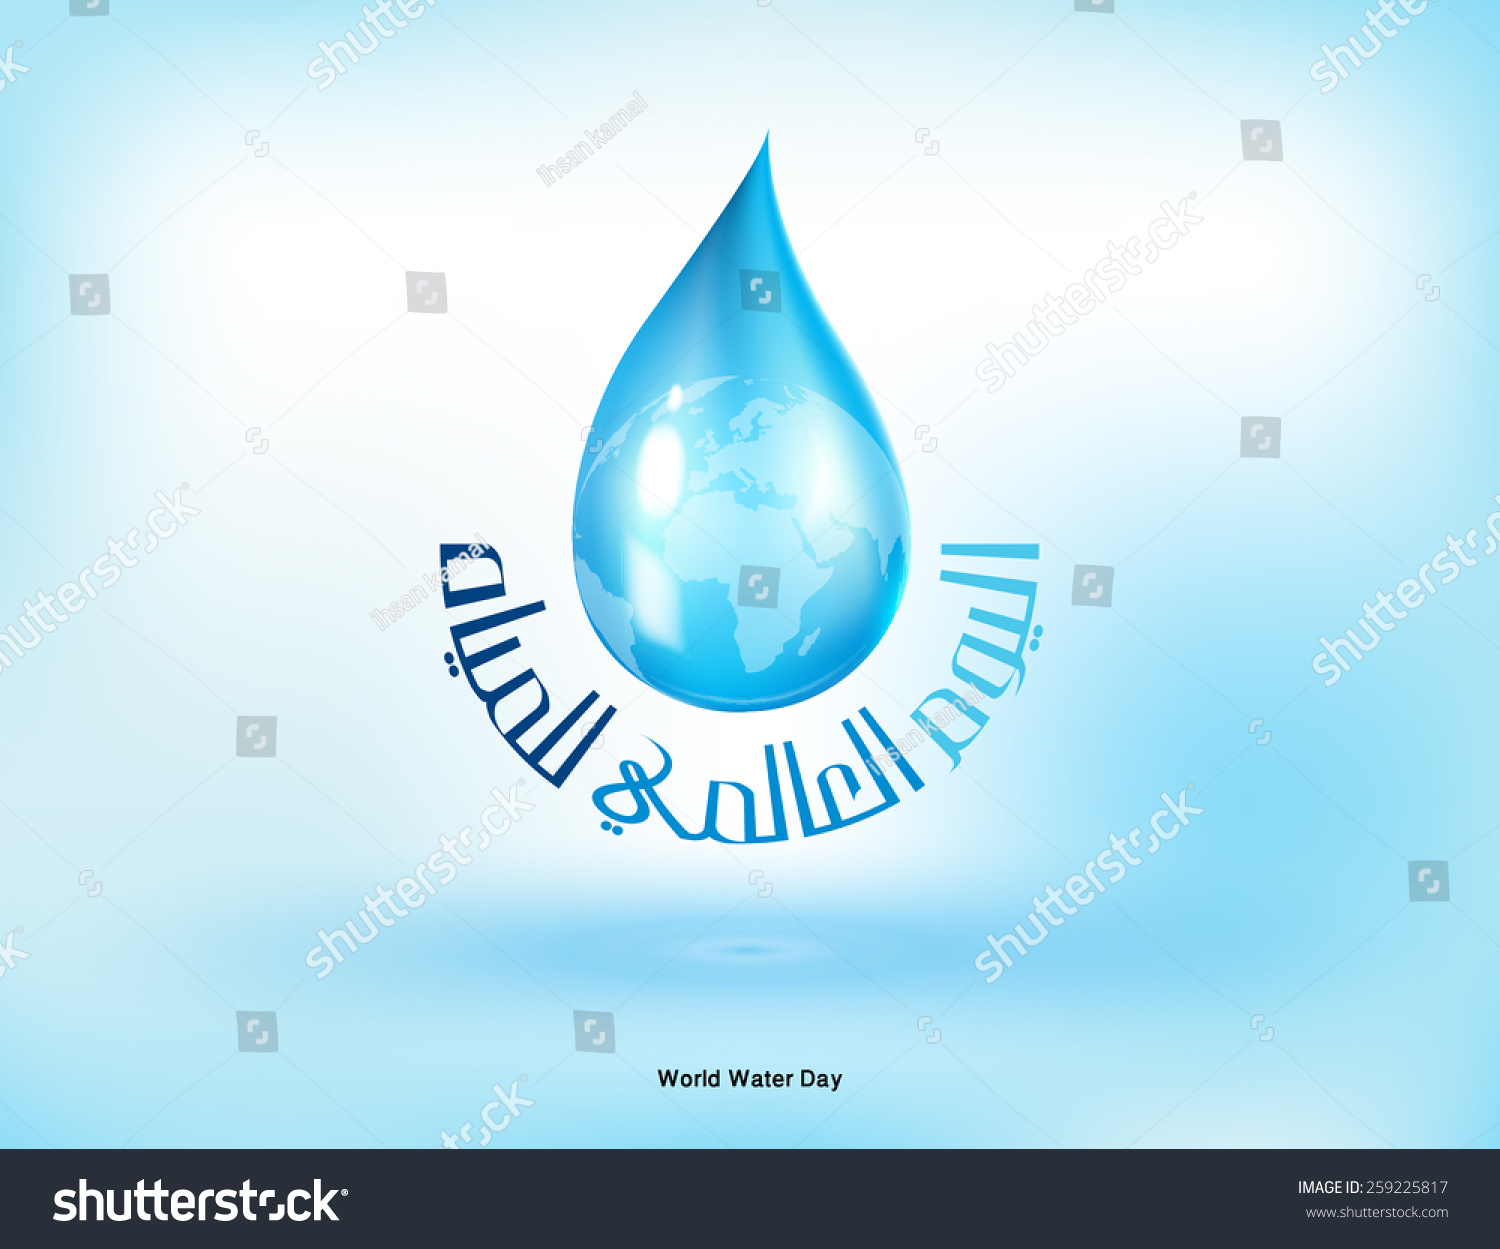 Water droplet arabic text world water vectores en stock 259225817 water droplet and arabic text world water day with the world map inside gumiabroncs Gallery